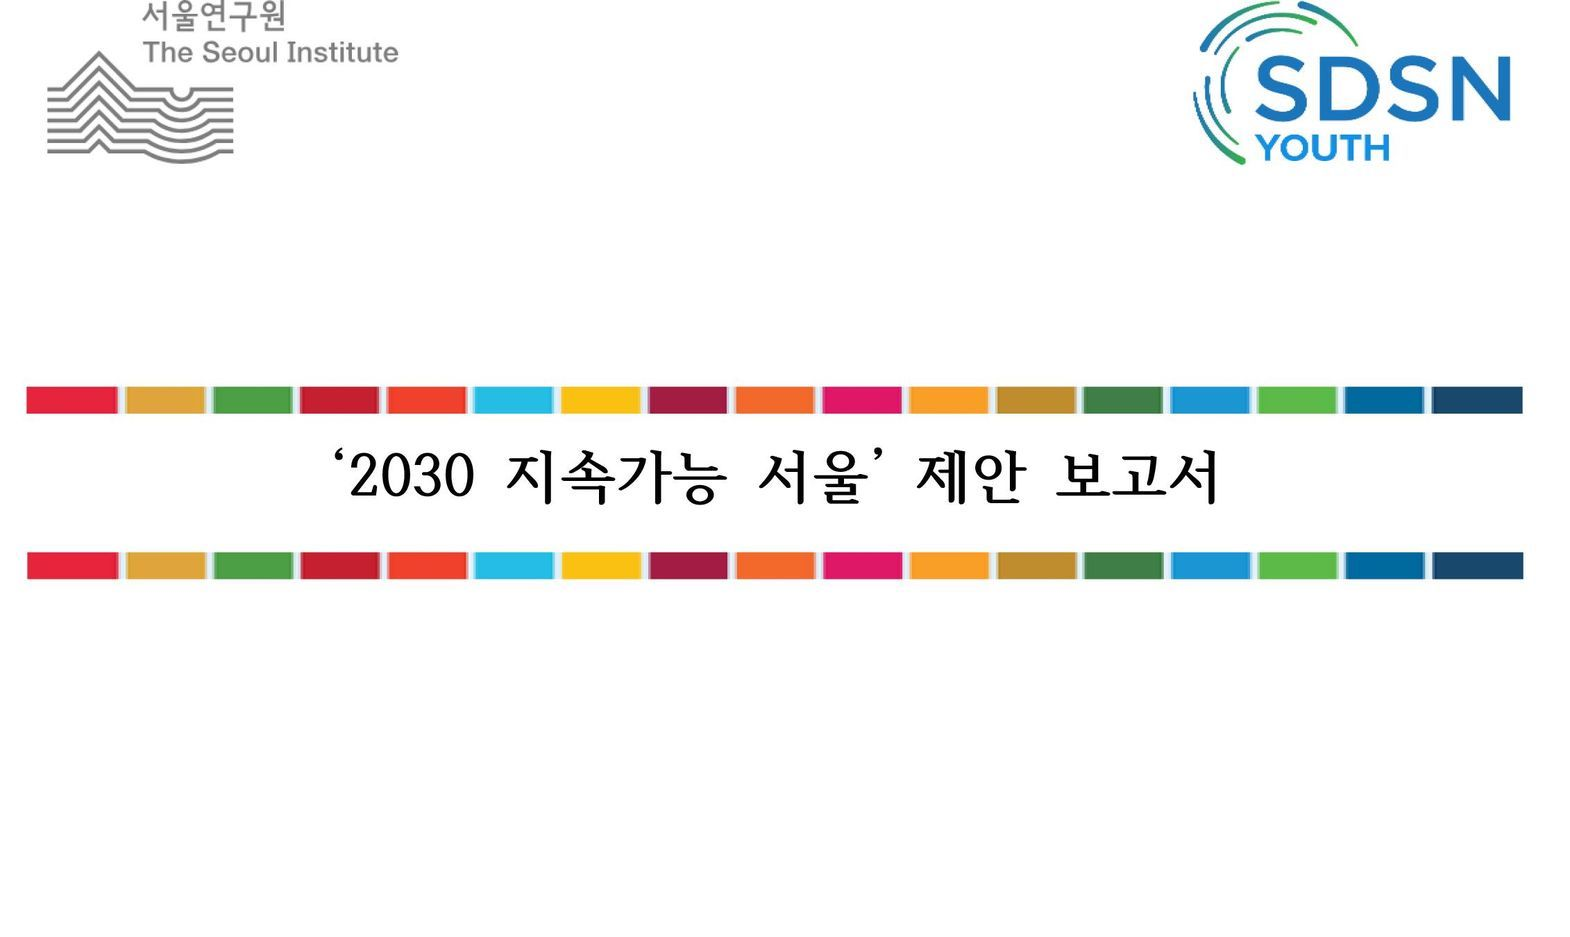 Policy Recommendation Report to the Seoul Metropolitan Government 2020